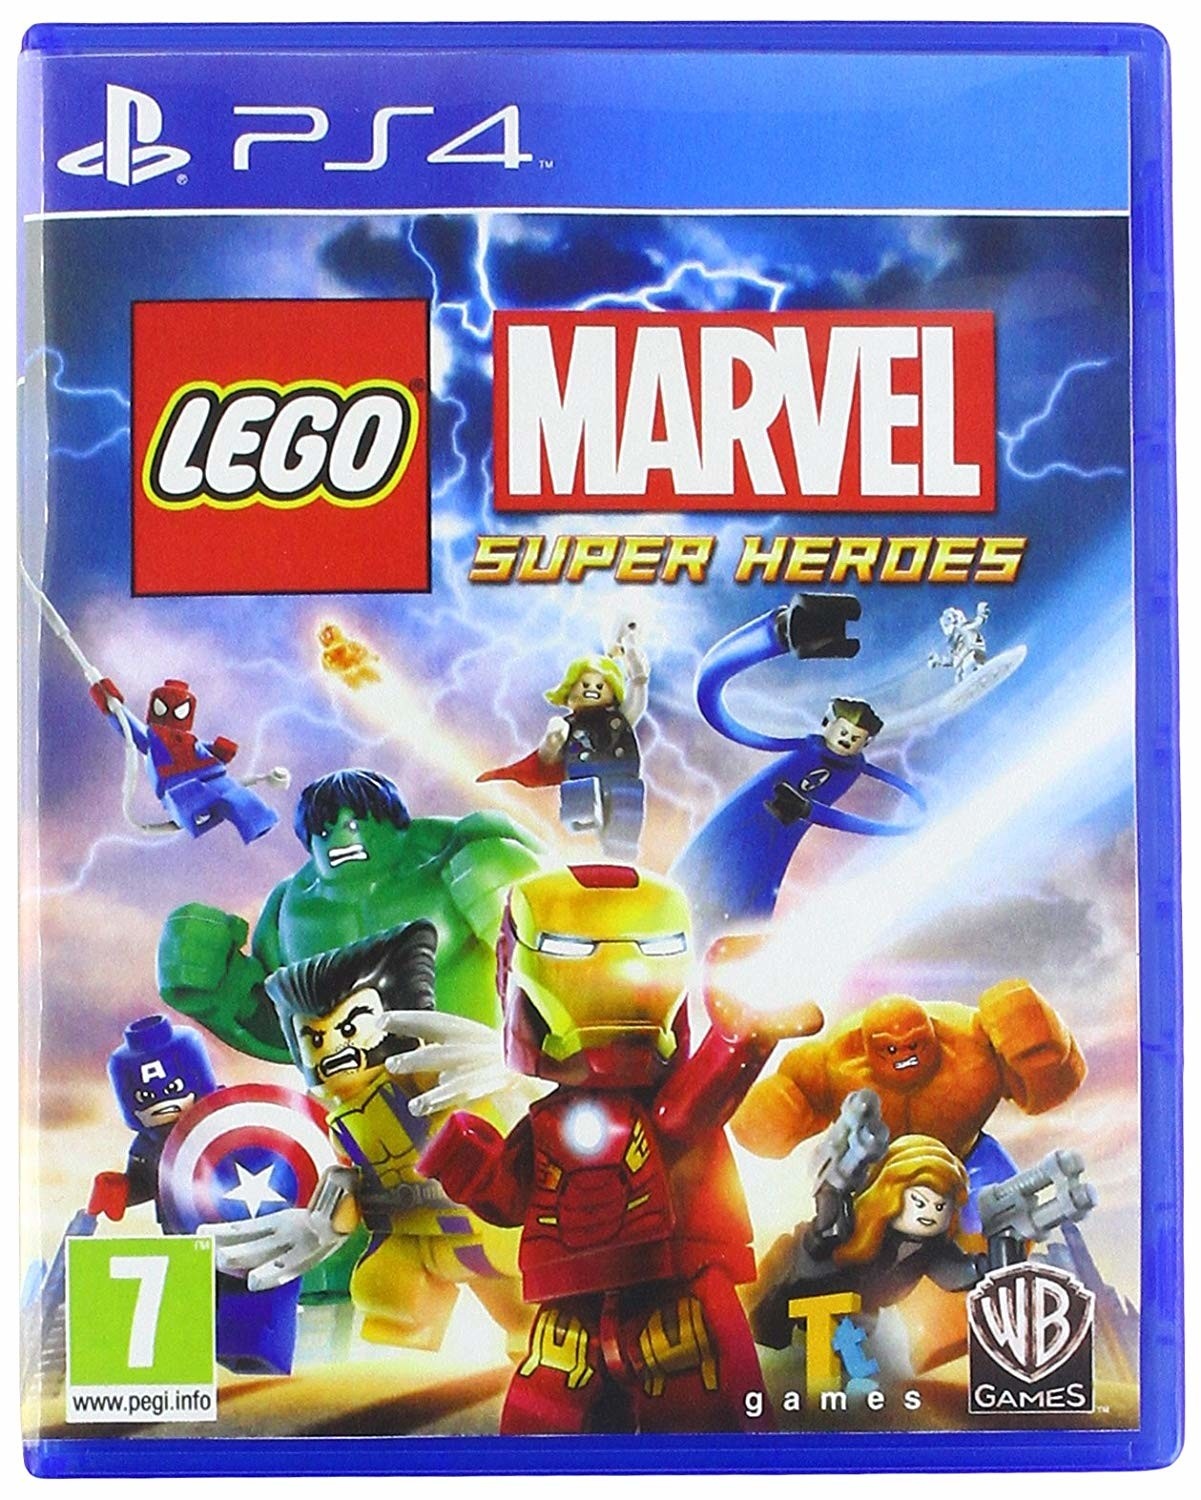 Lego Marvel Super Heroes Playstation 4 Ps4 Game Jurassic World